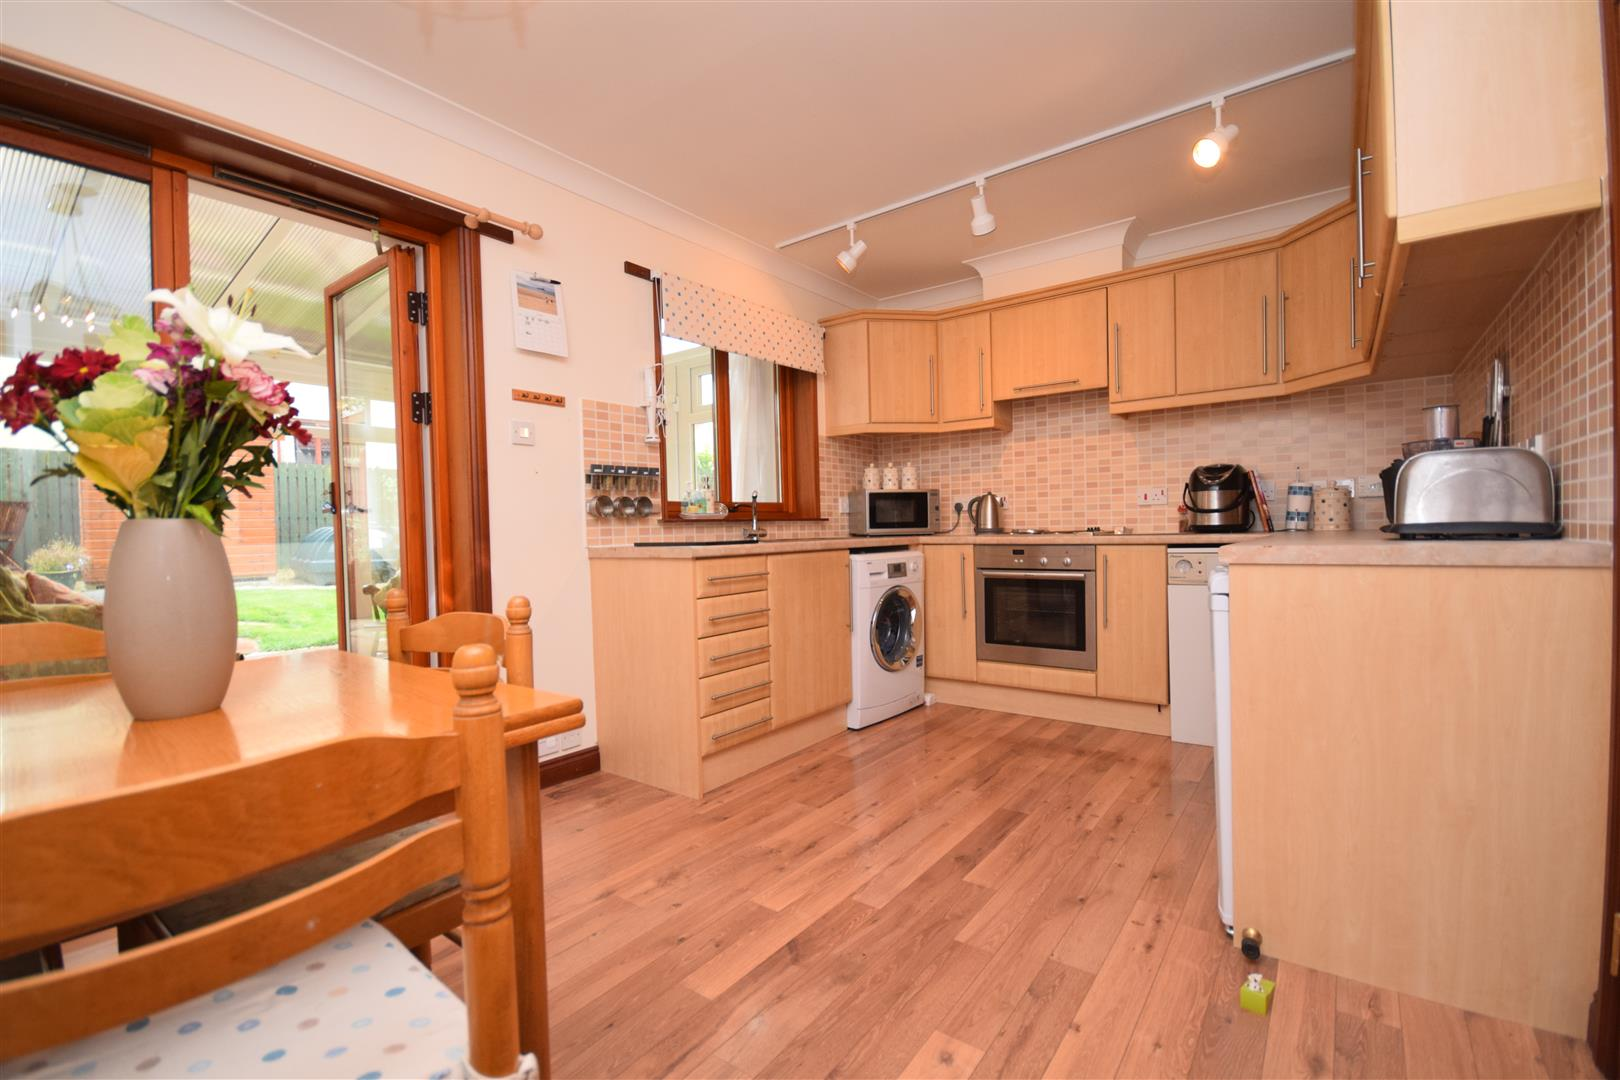 5, Provost Mains, Abernethy, Perthshire, PH2 9GE, UK